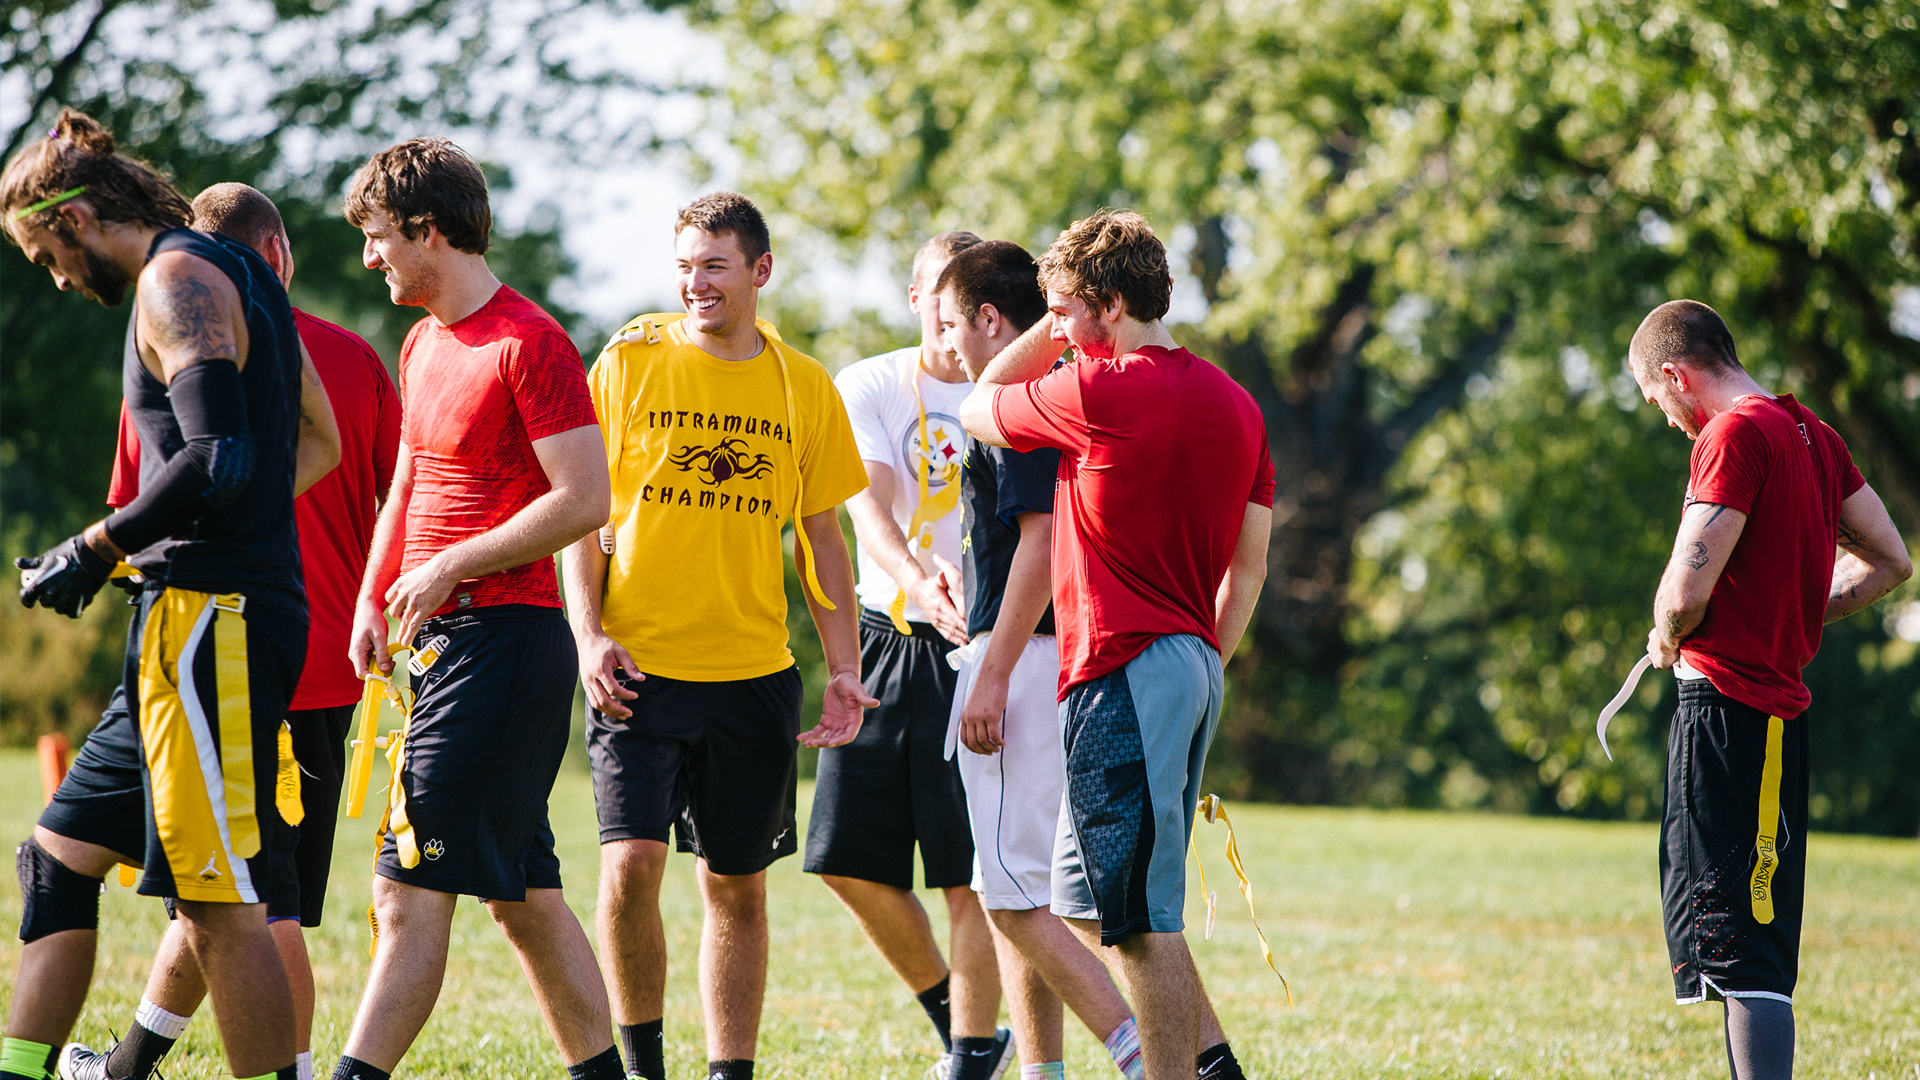 Students play flag football on campus